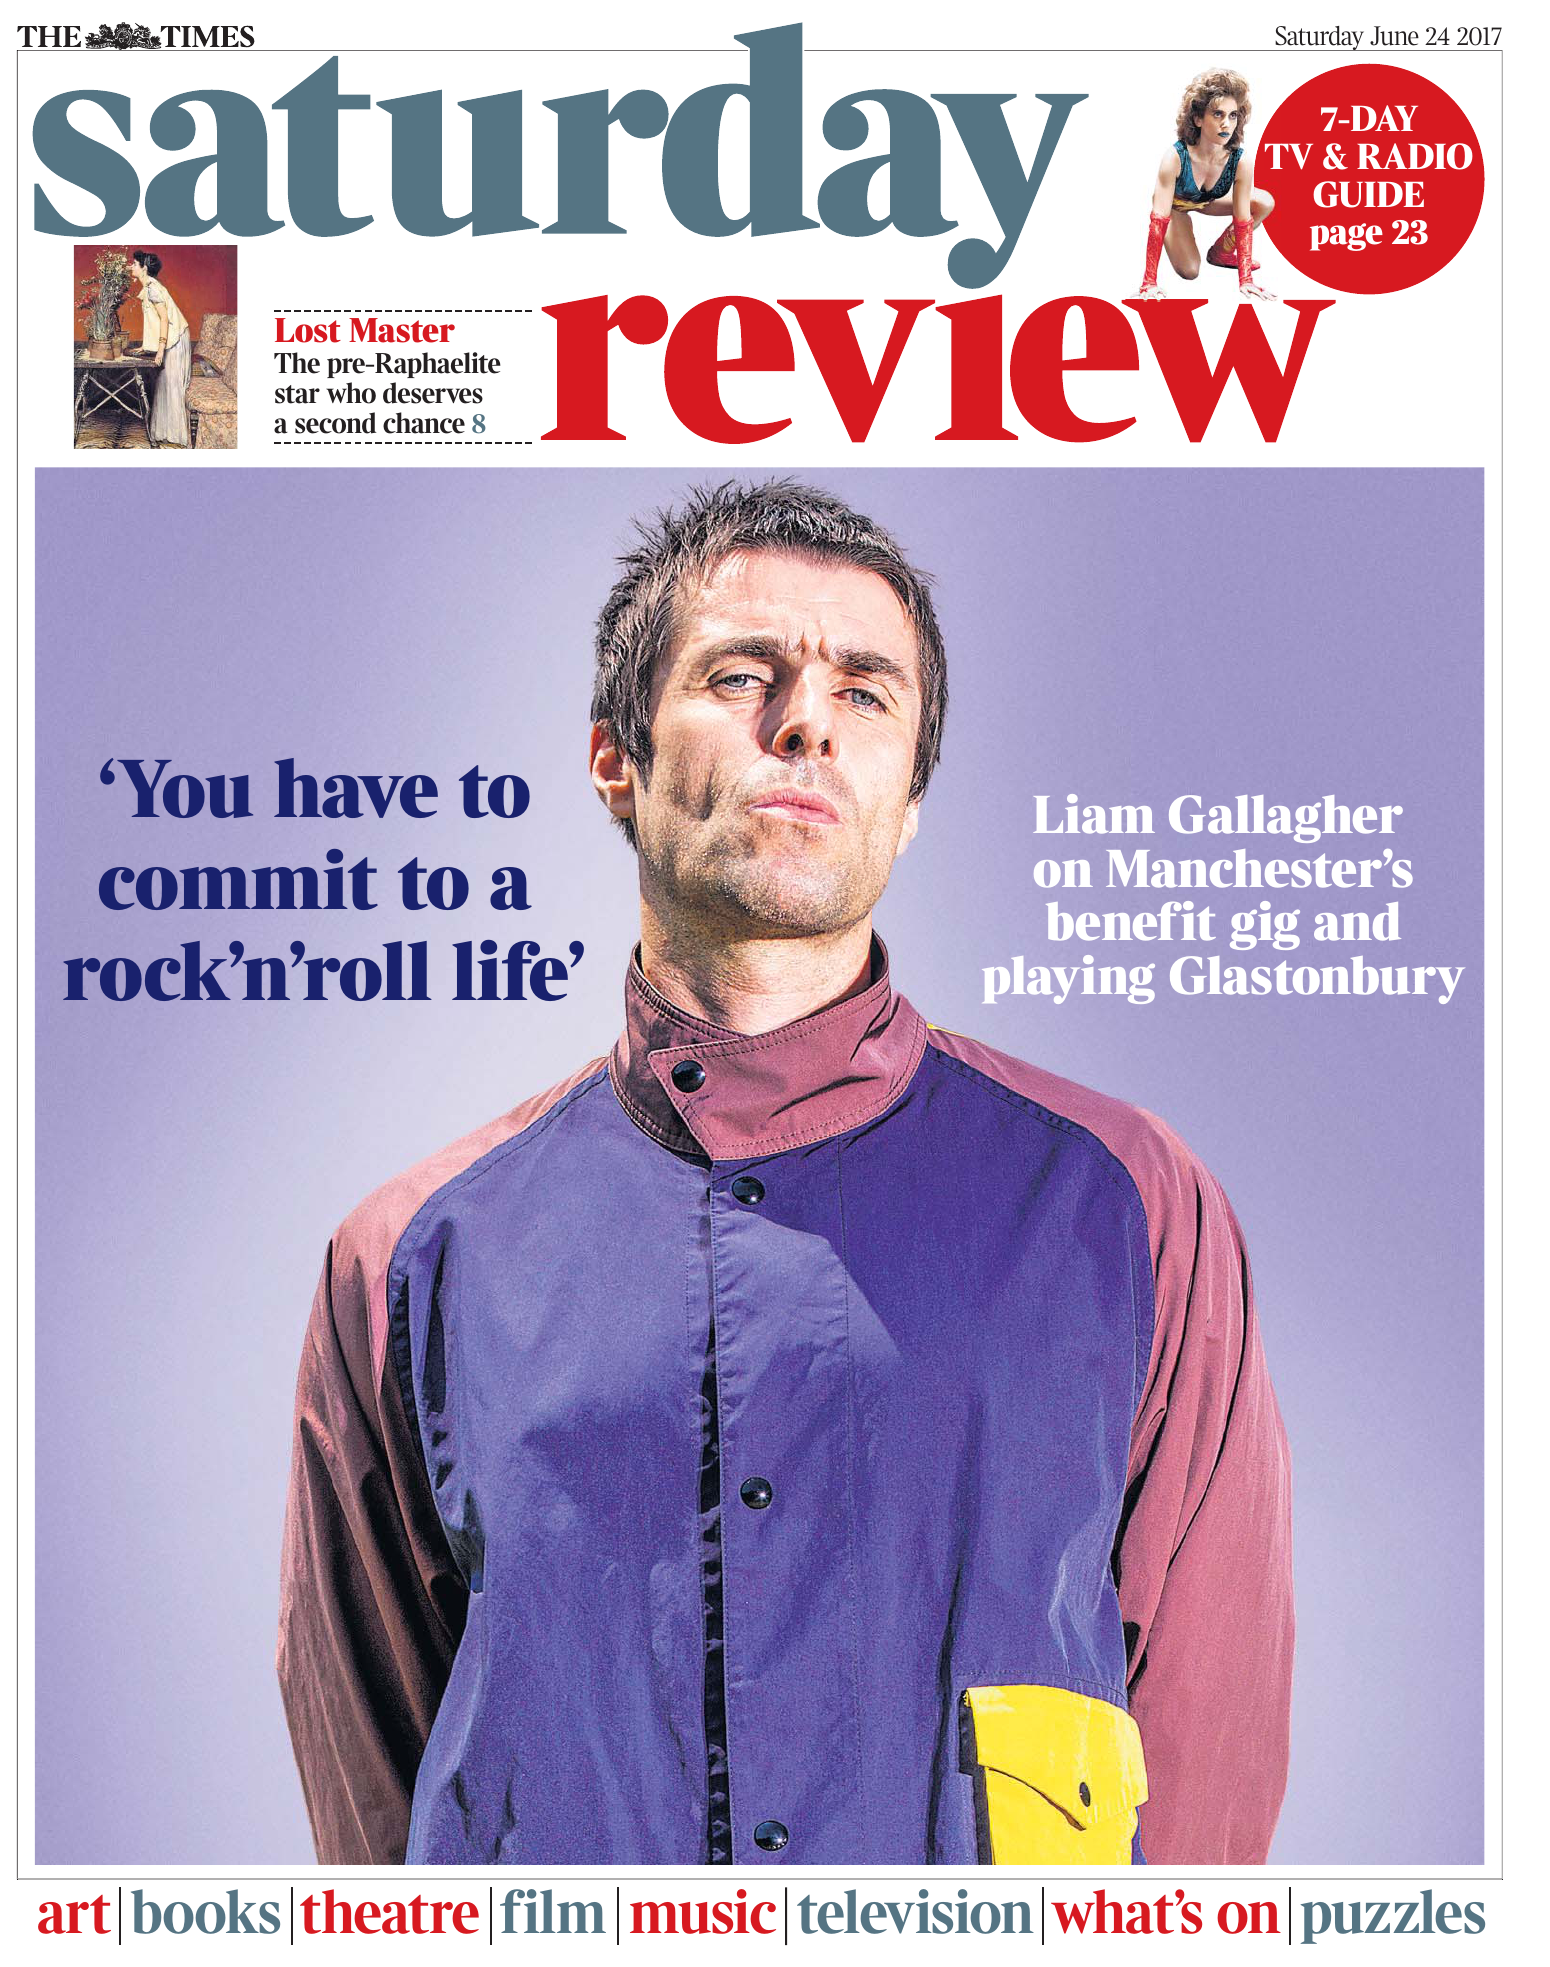 f97775fbec The Times Saturday Review 24 June 2017